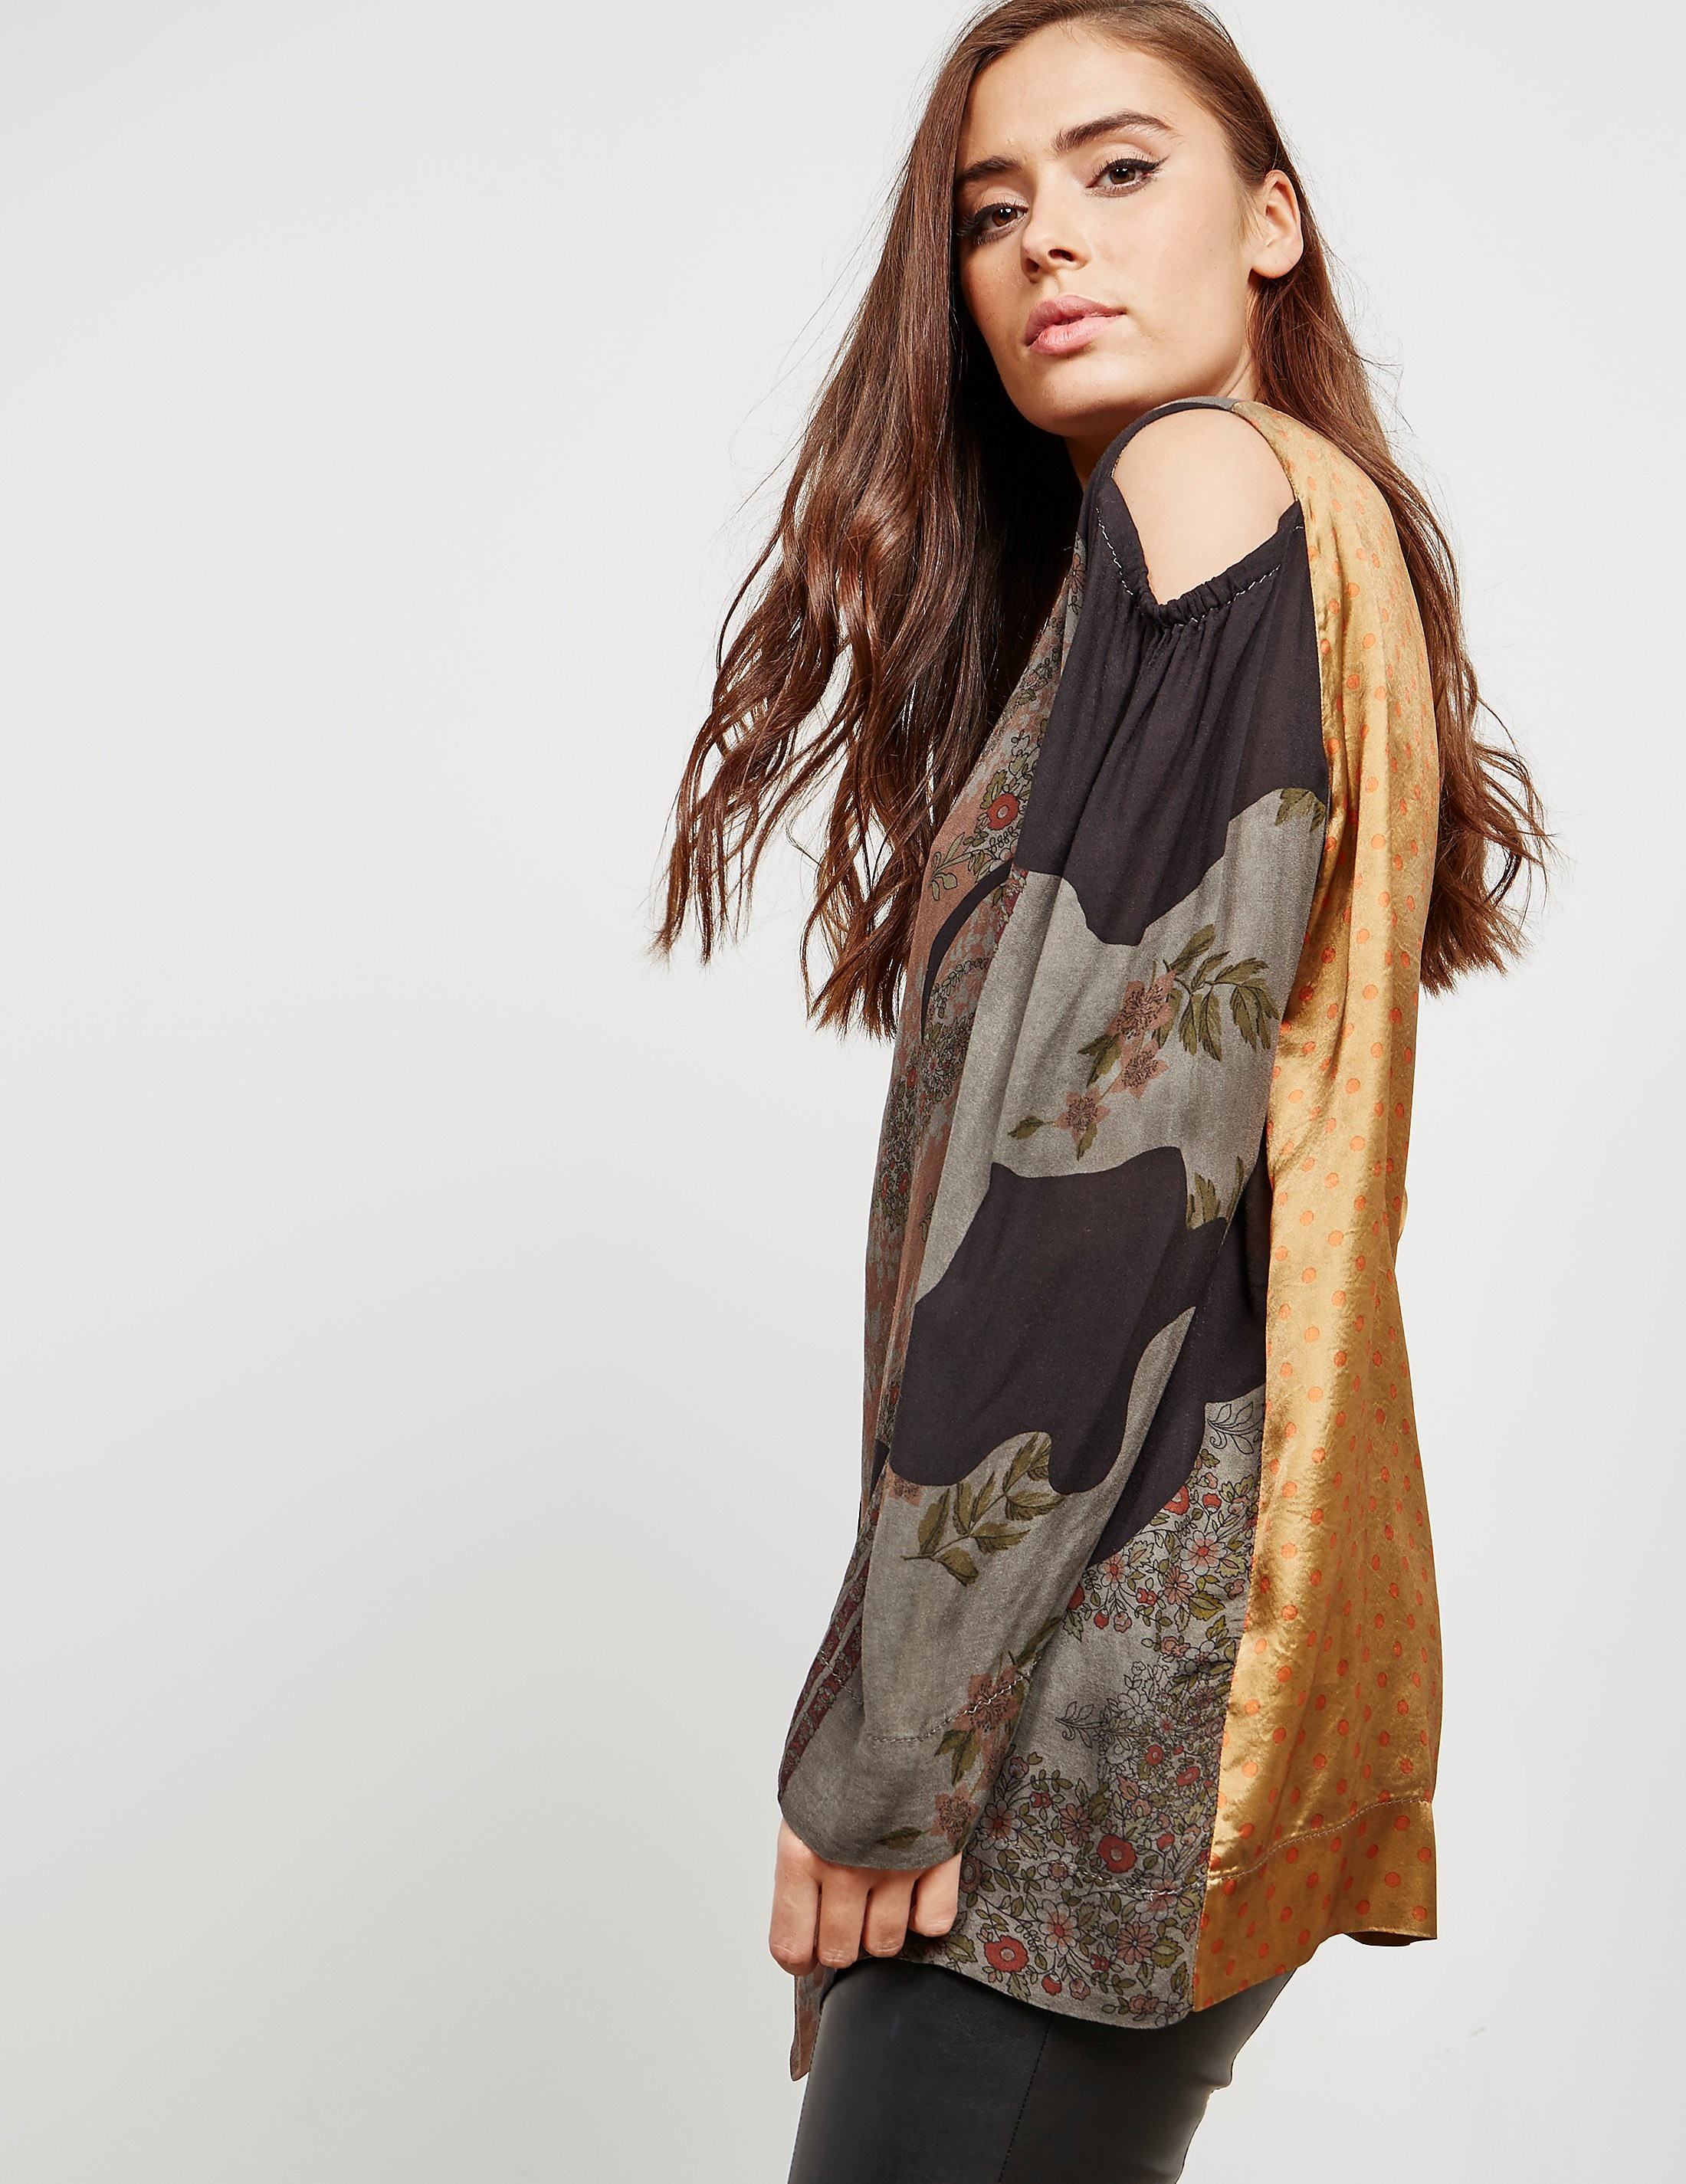 Vivienne Westwood Anglomania Fatima Blouse